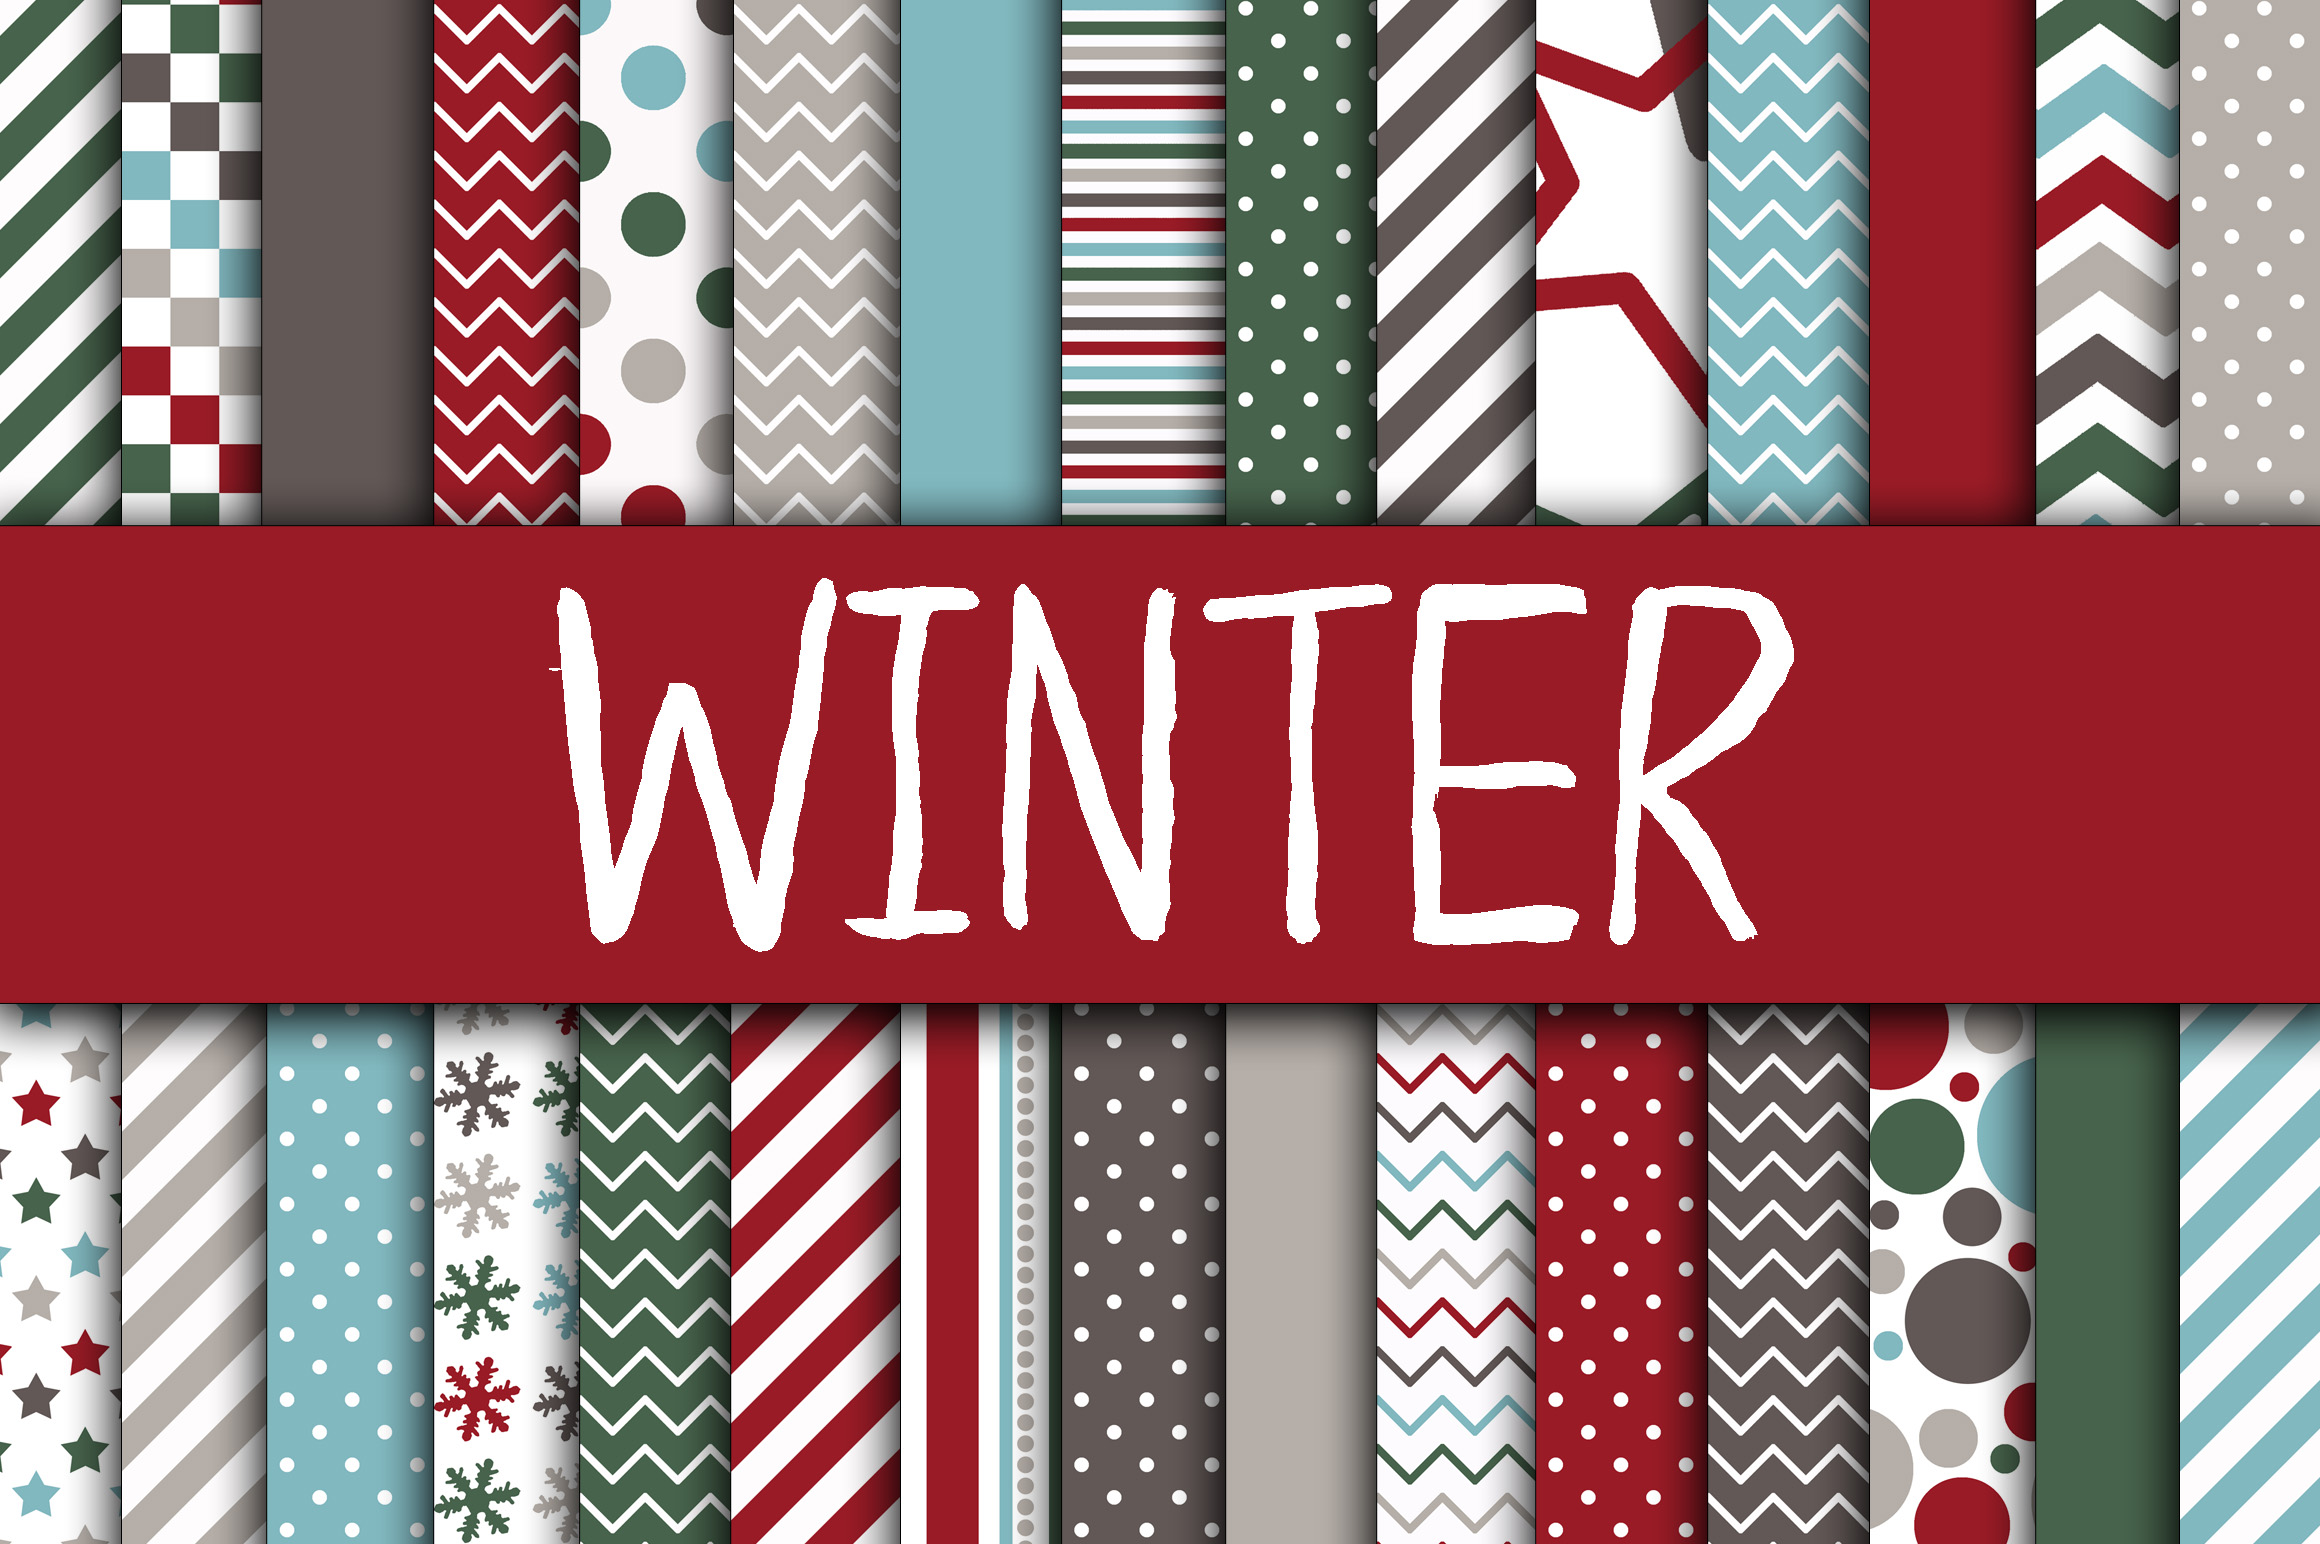 Winter Digital Papers Graphic By oldmarketdesigns Image 1